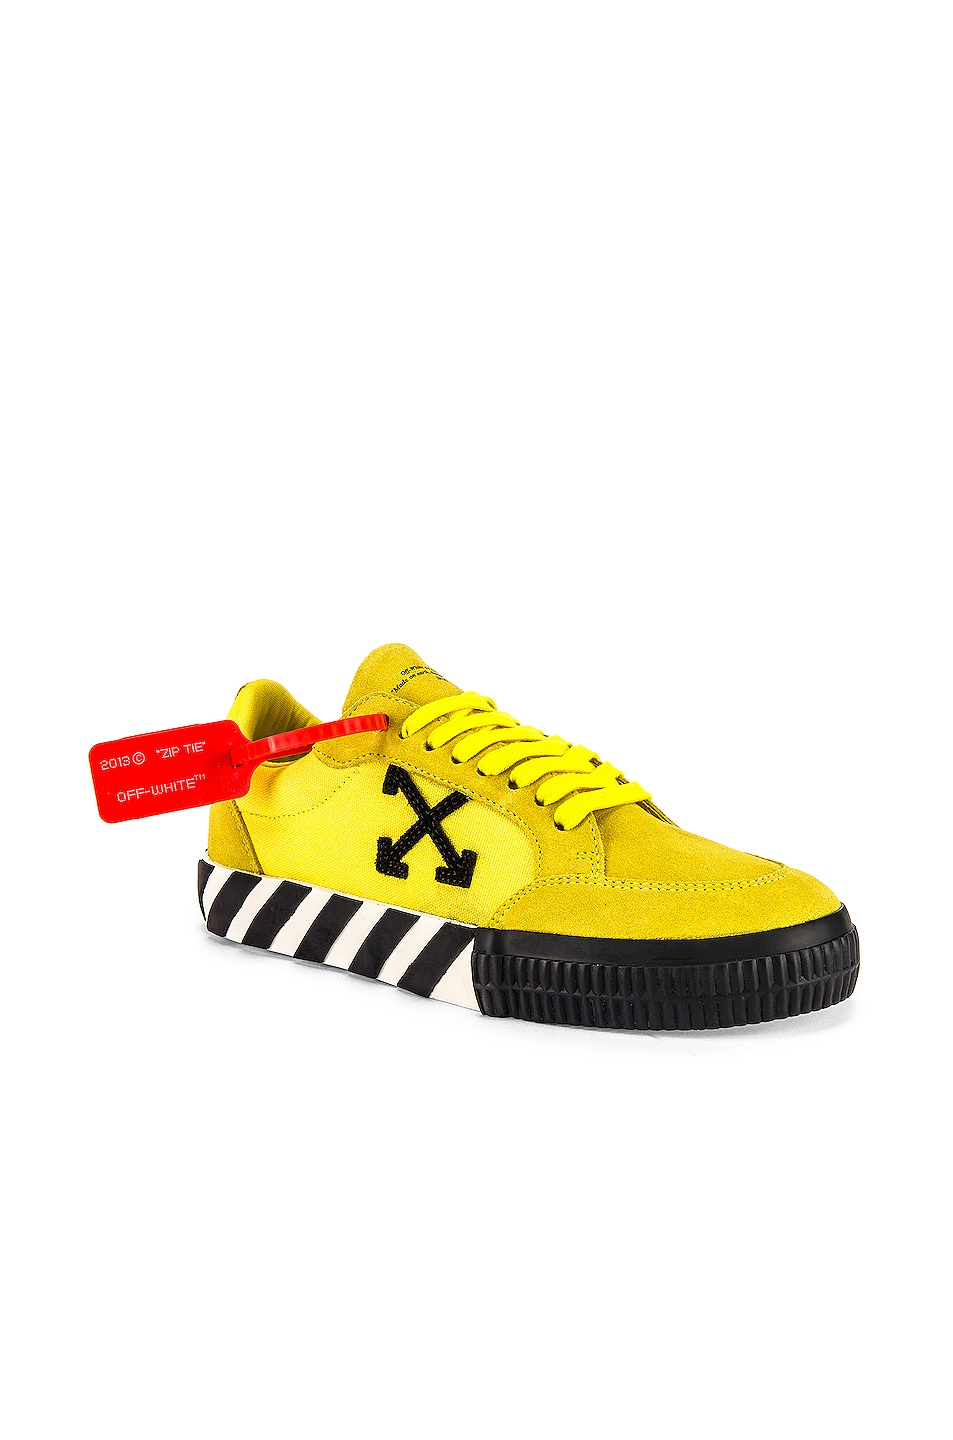 Image 1 of OFF-WHITE Low Vulcanized Sneaker in Yellow & Black